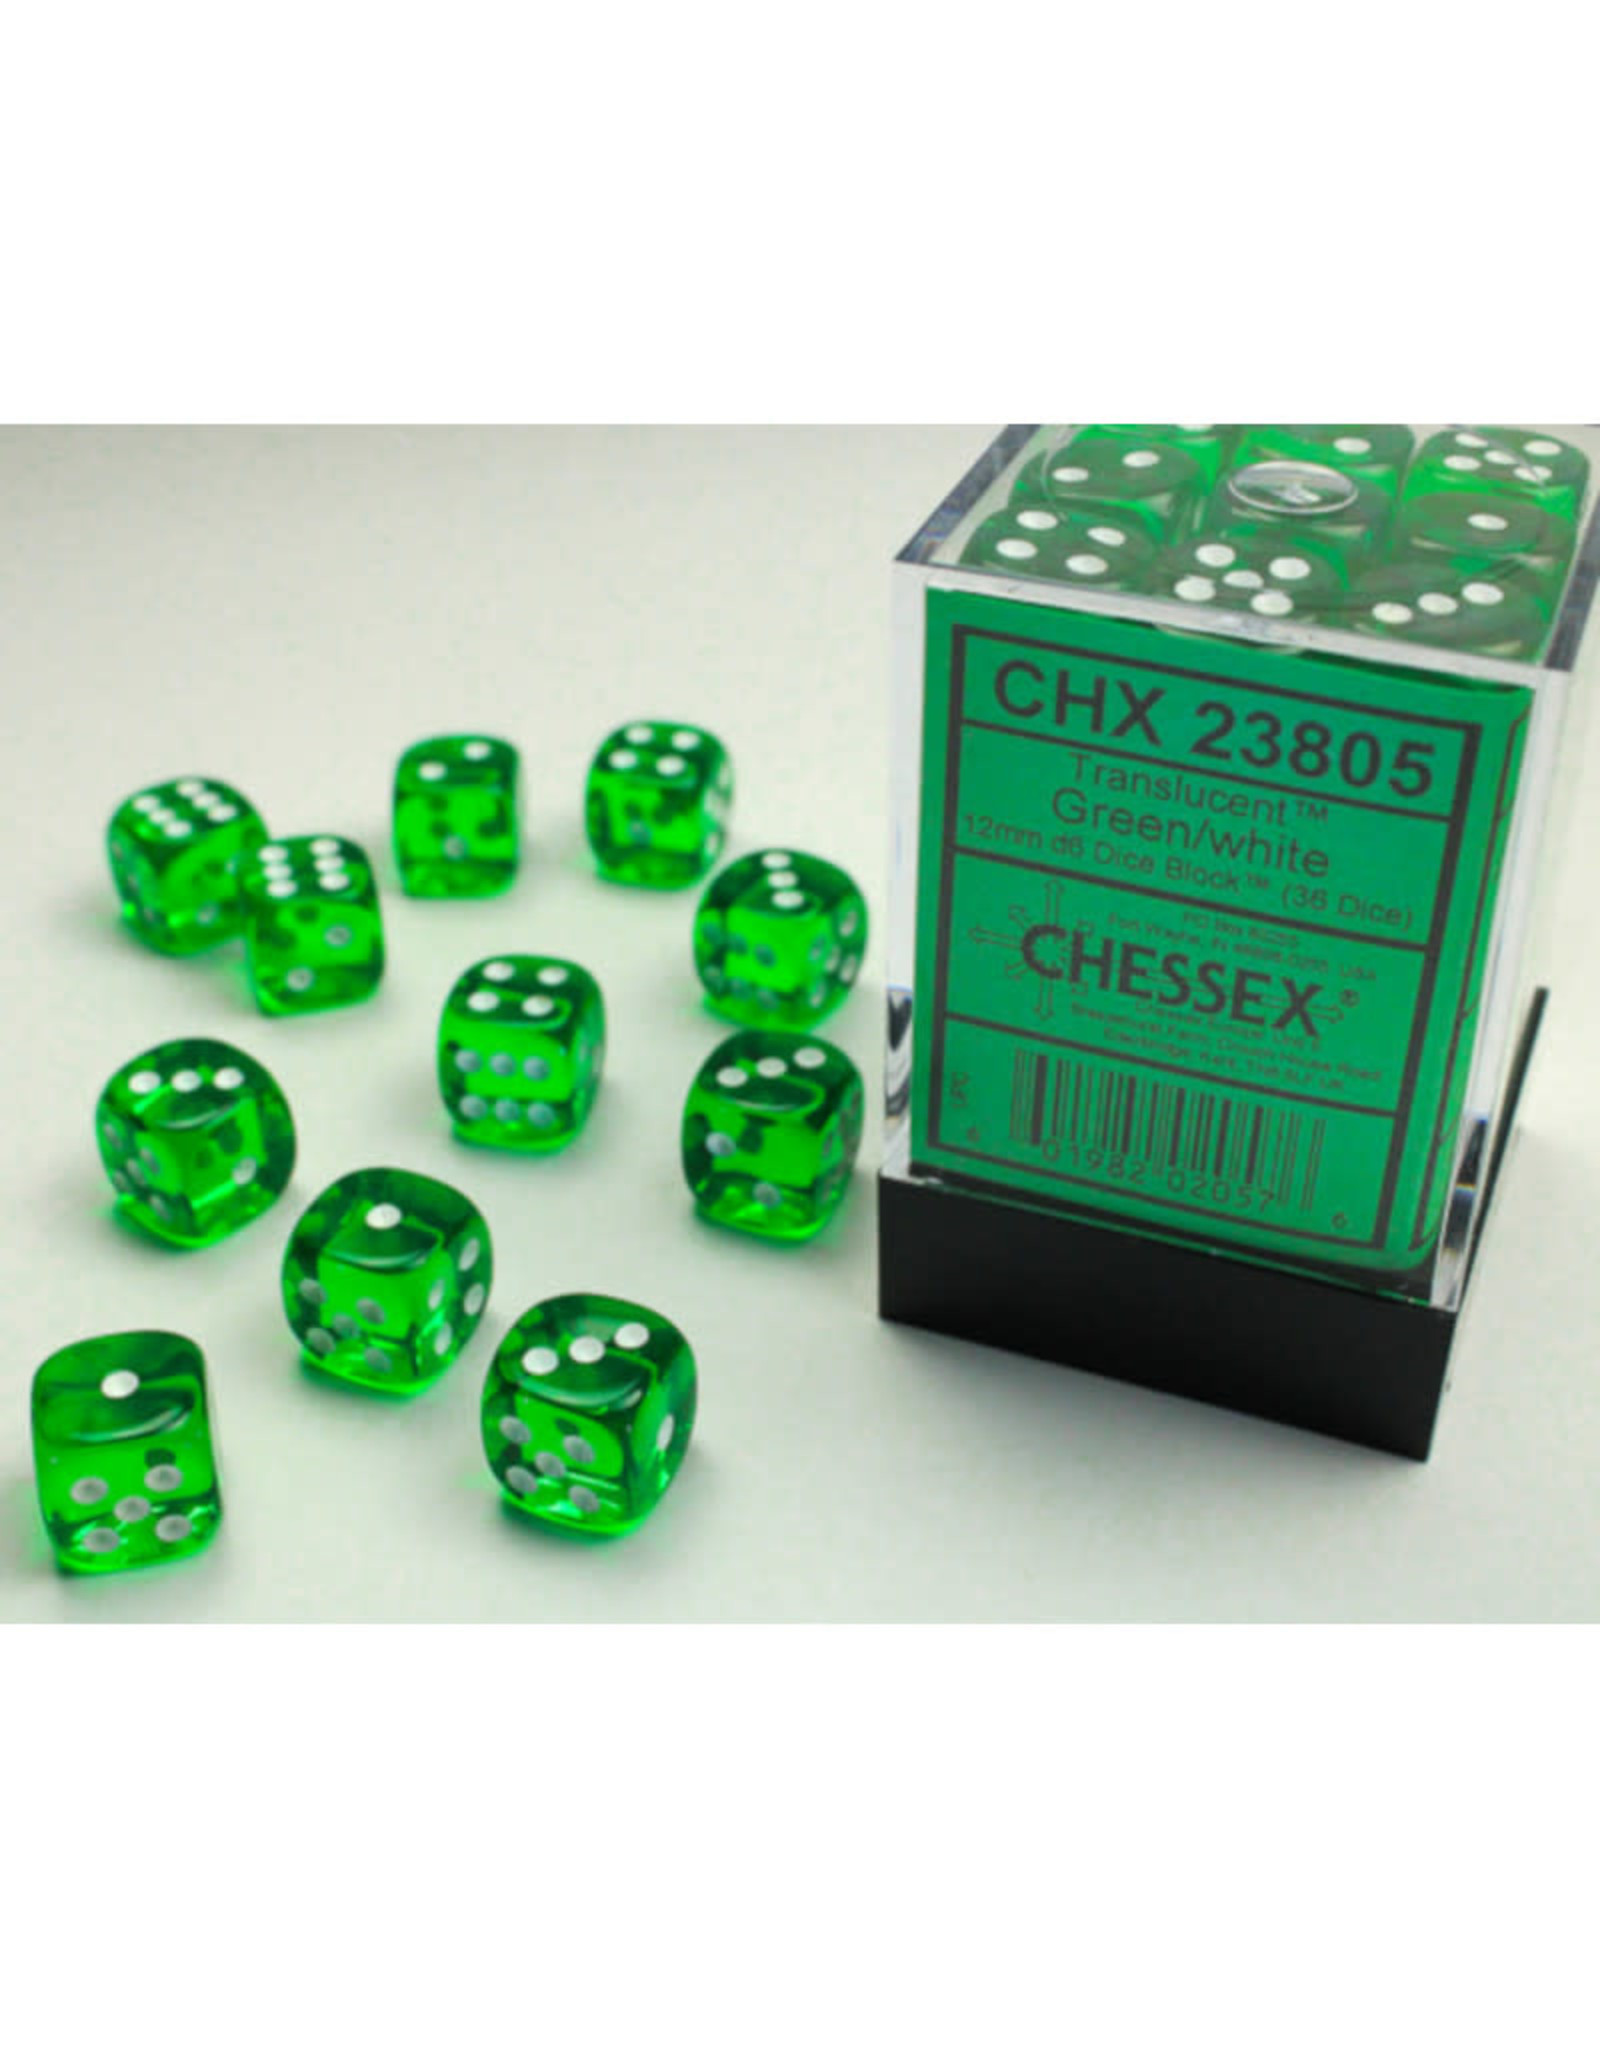 Chessex D6 Dice: 12mm Translucent Green/White (36)